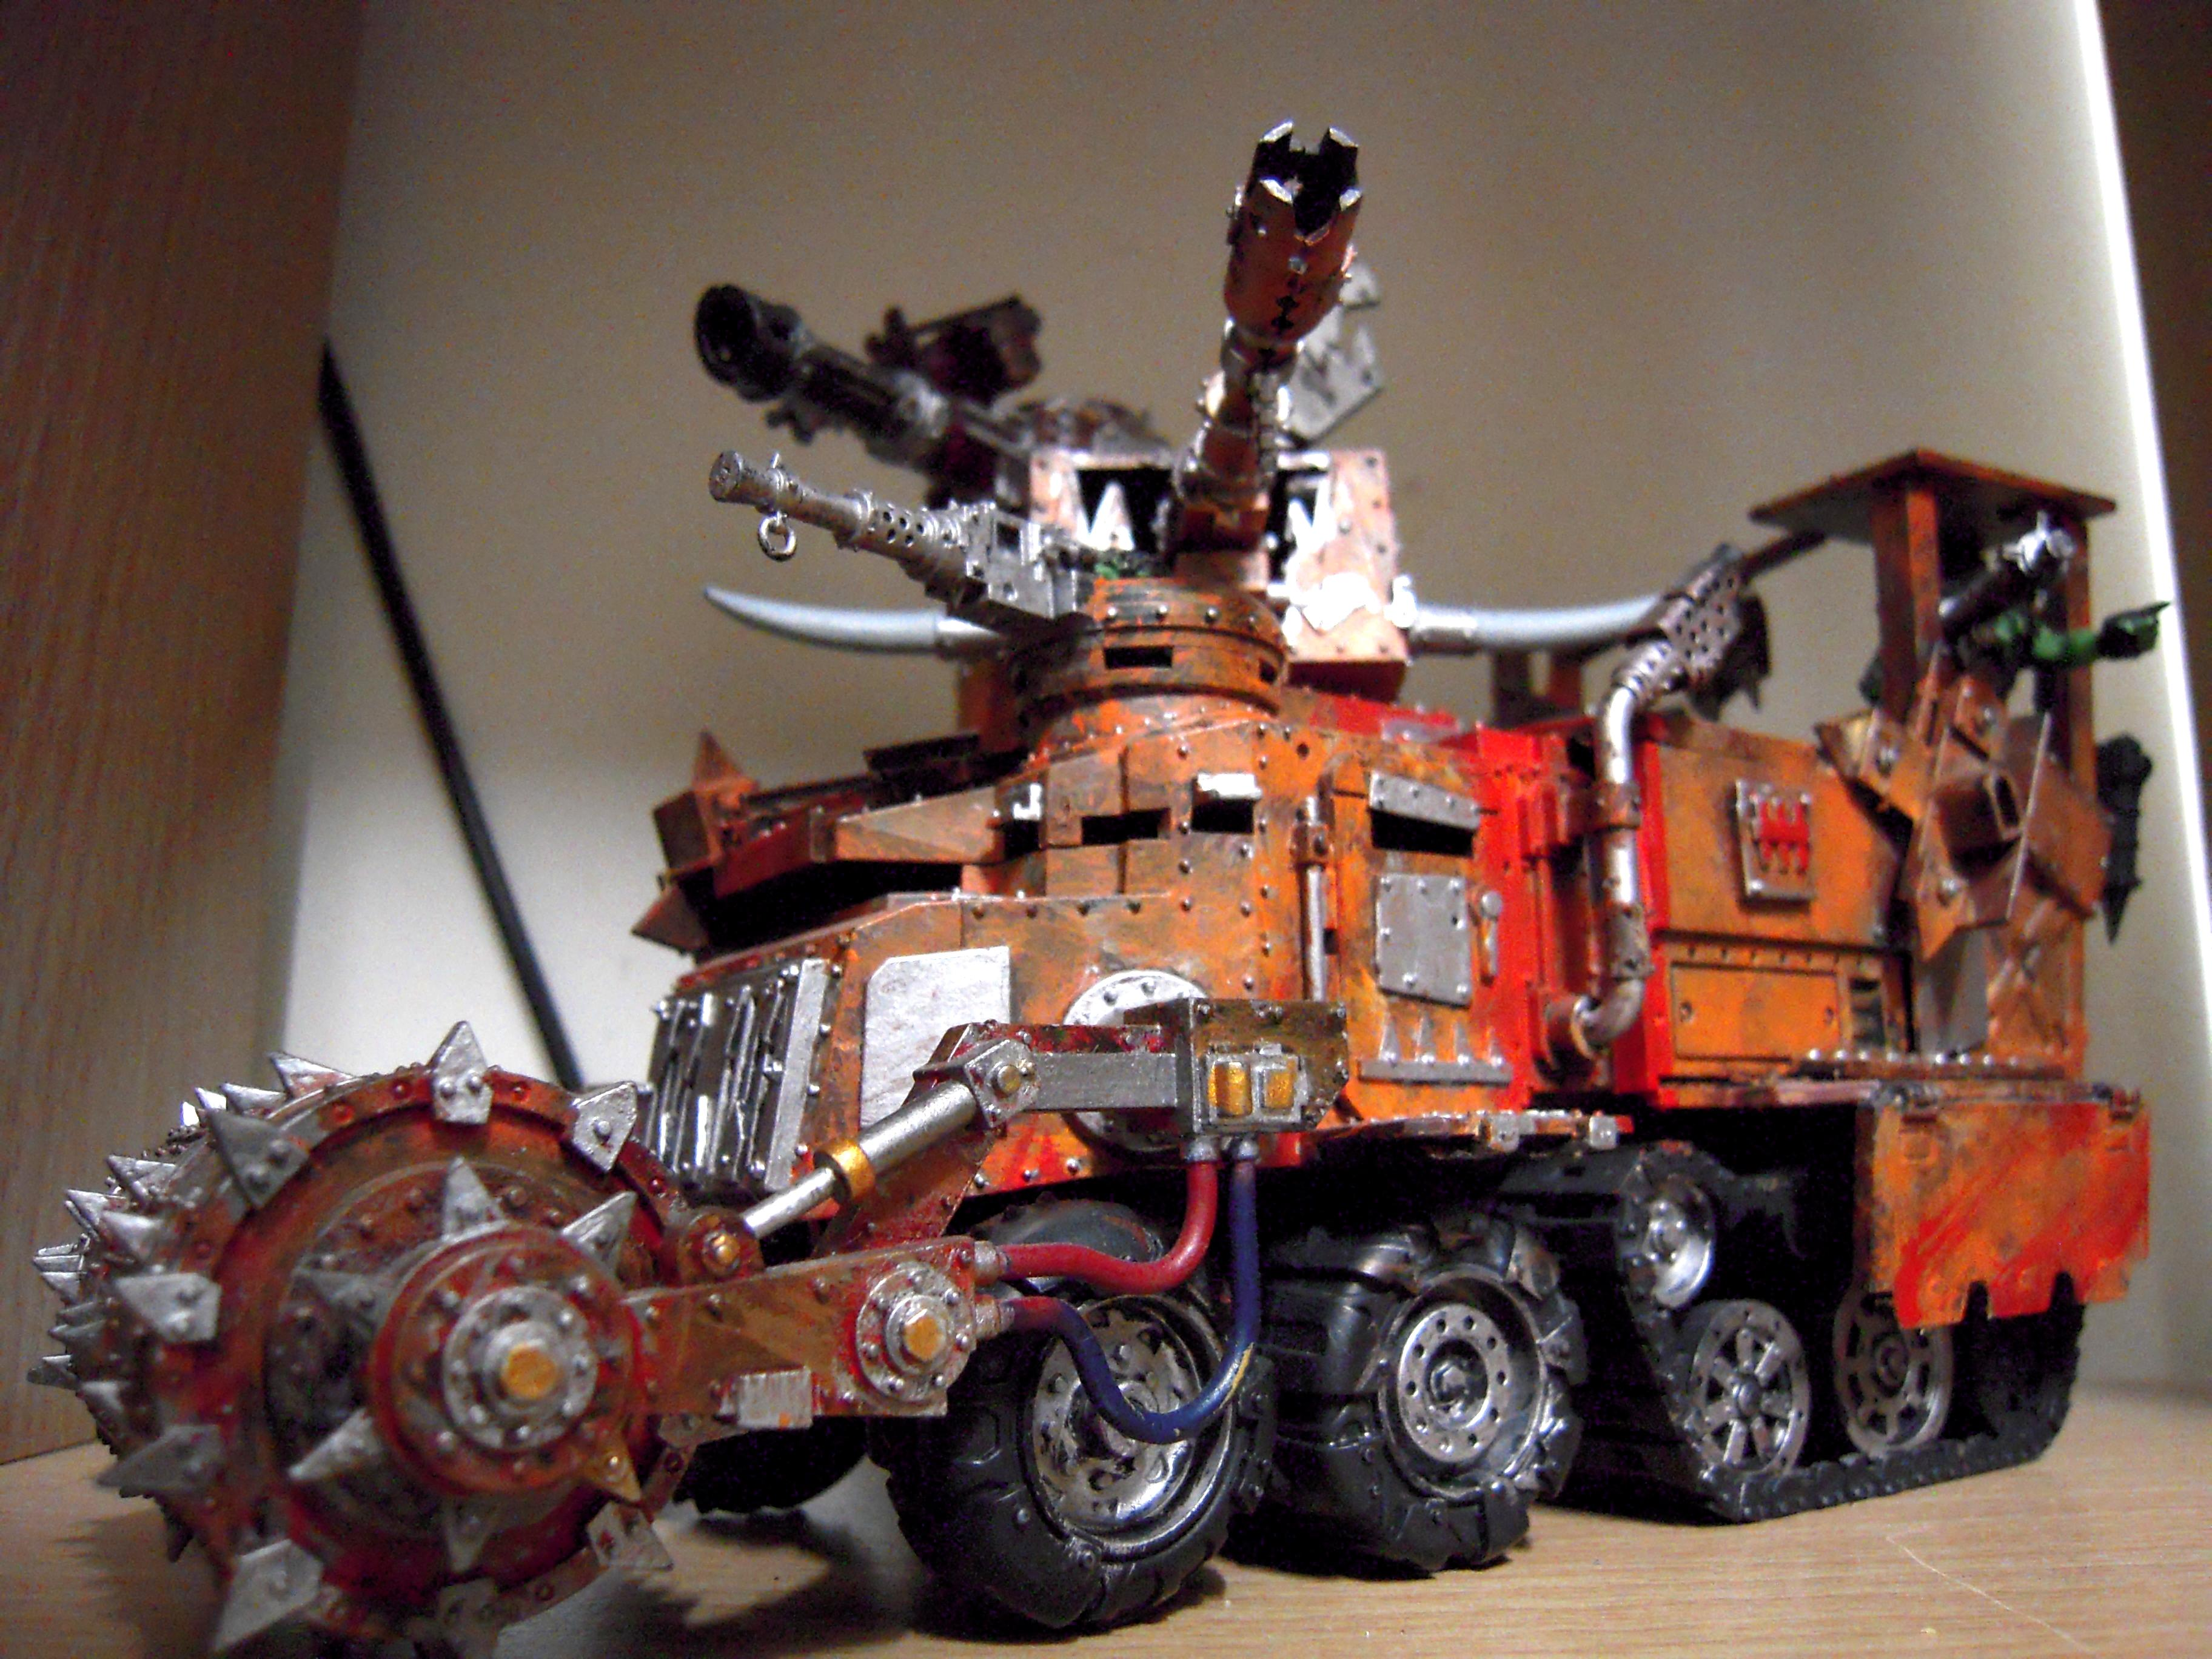 Armor, Battle, Battlewagon, Big, Conversion, Deff, Deff Rolla, Deth Rolla, Fortress, Giant, Grot Rigger, Grot Riggers, Huge, Kannon, Large, Loot, Looted, Open Top, Orks, Rolla, Scratch Build, Shoota, Sponsons, Tank, Turret, Turrets, Vehicle, Wagon